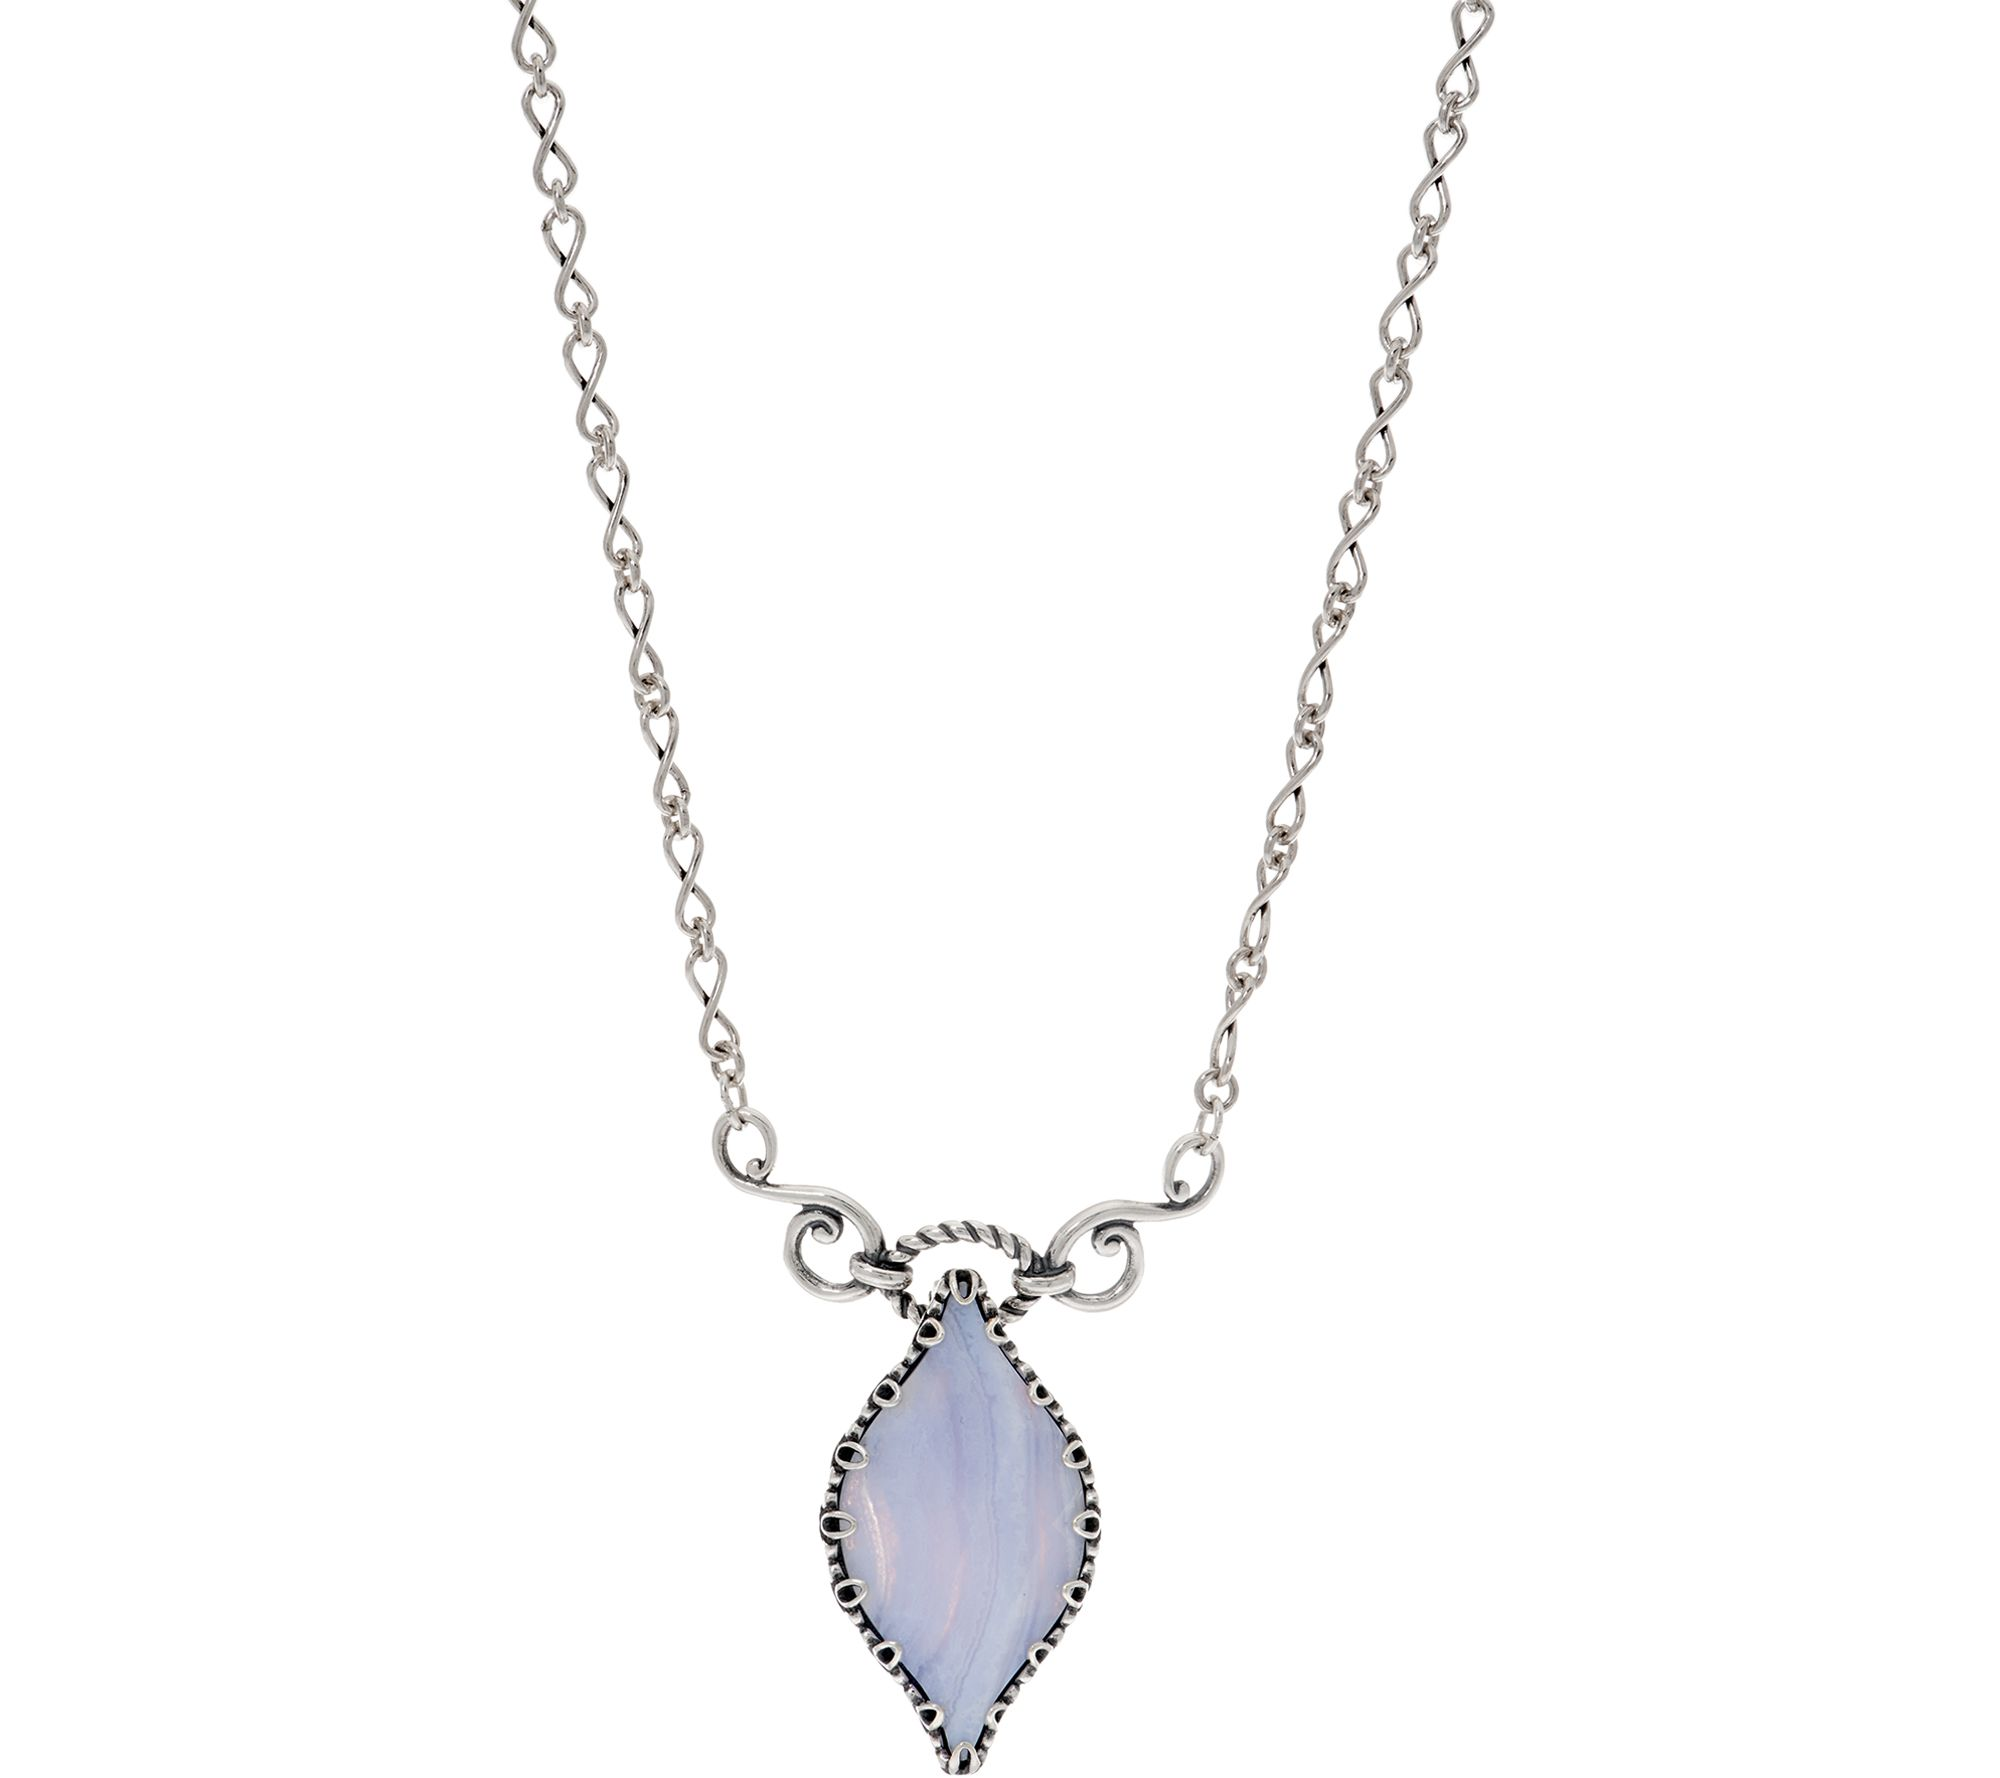 Carolyn Pollack Sterling Silver Faceted Blue Lace Agate Necklace - J353118